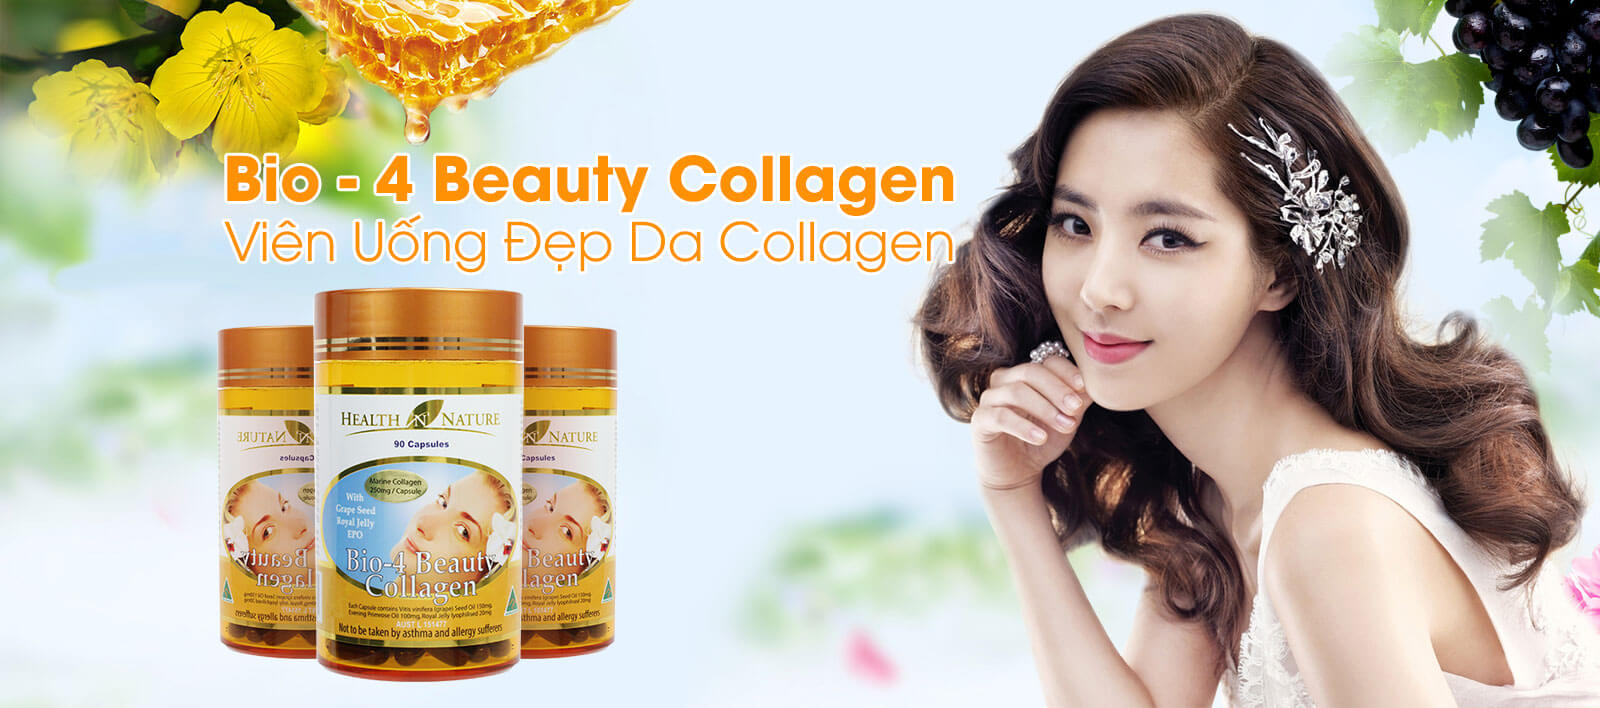 HN Bio - 4 Beauty Collagen 250mg - Viên uống đẹp da Collagen